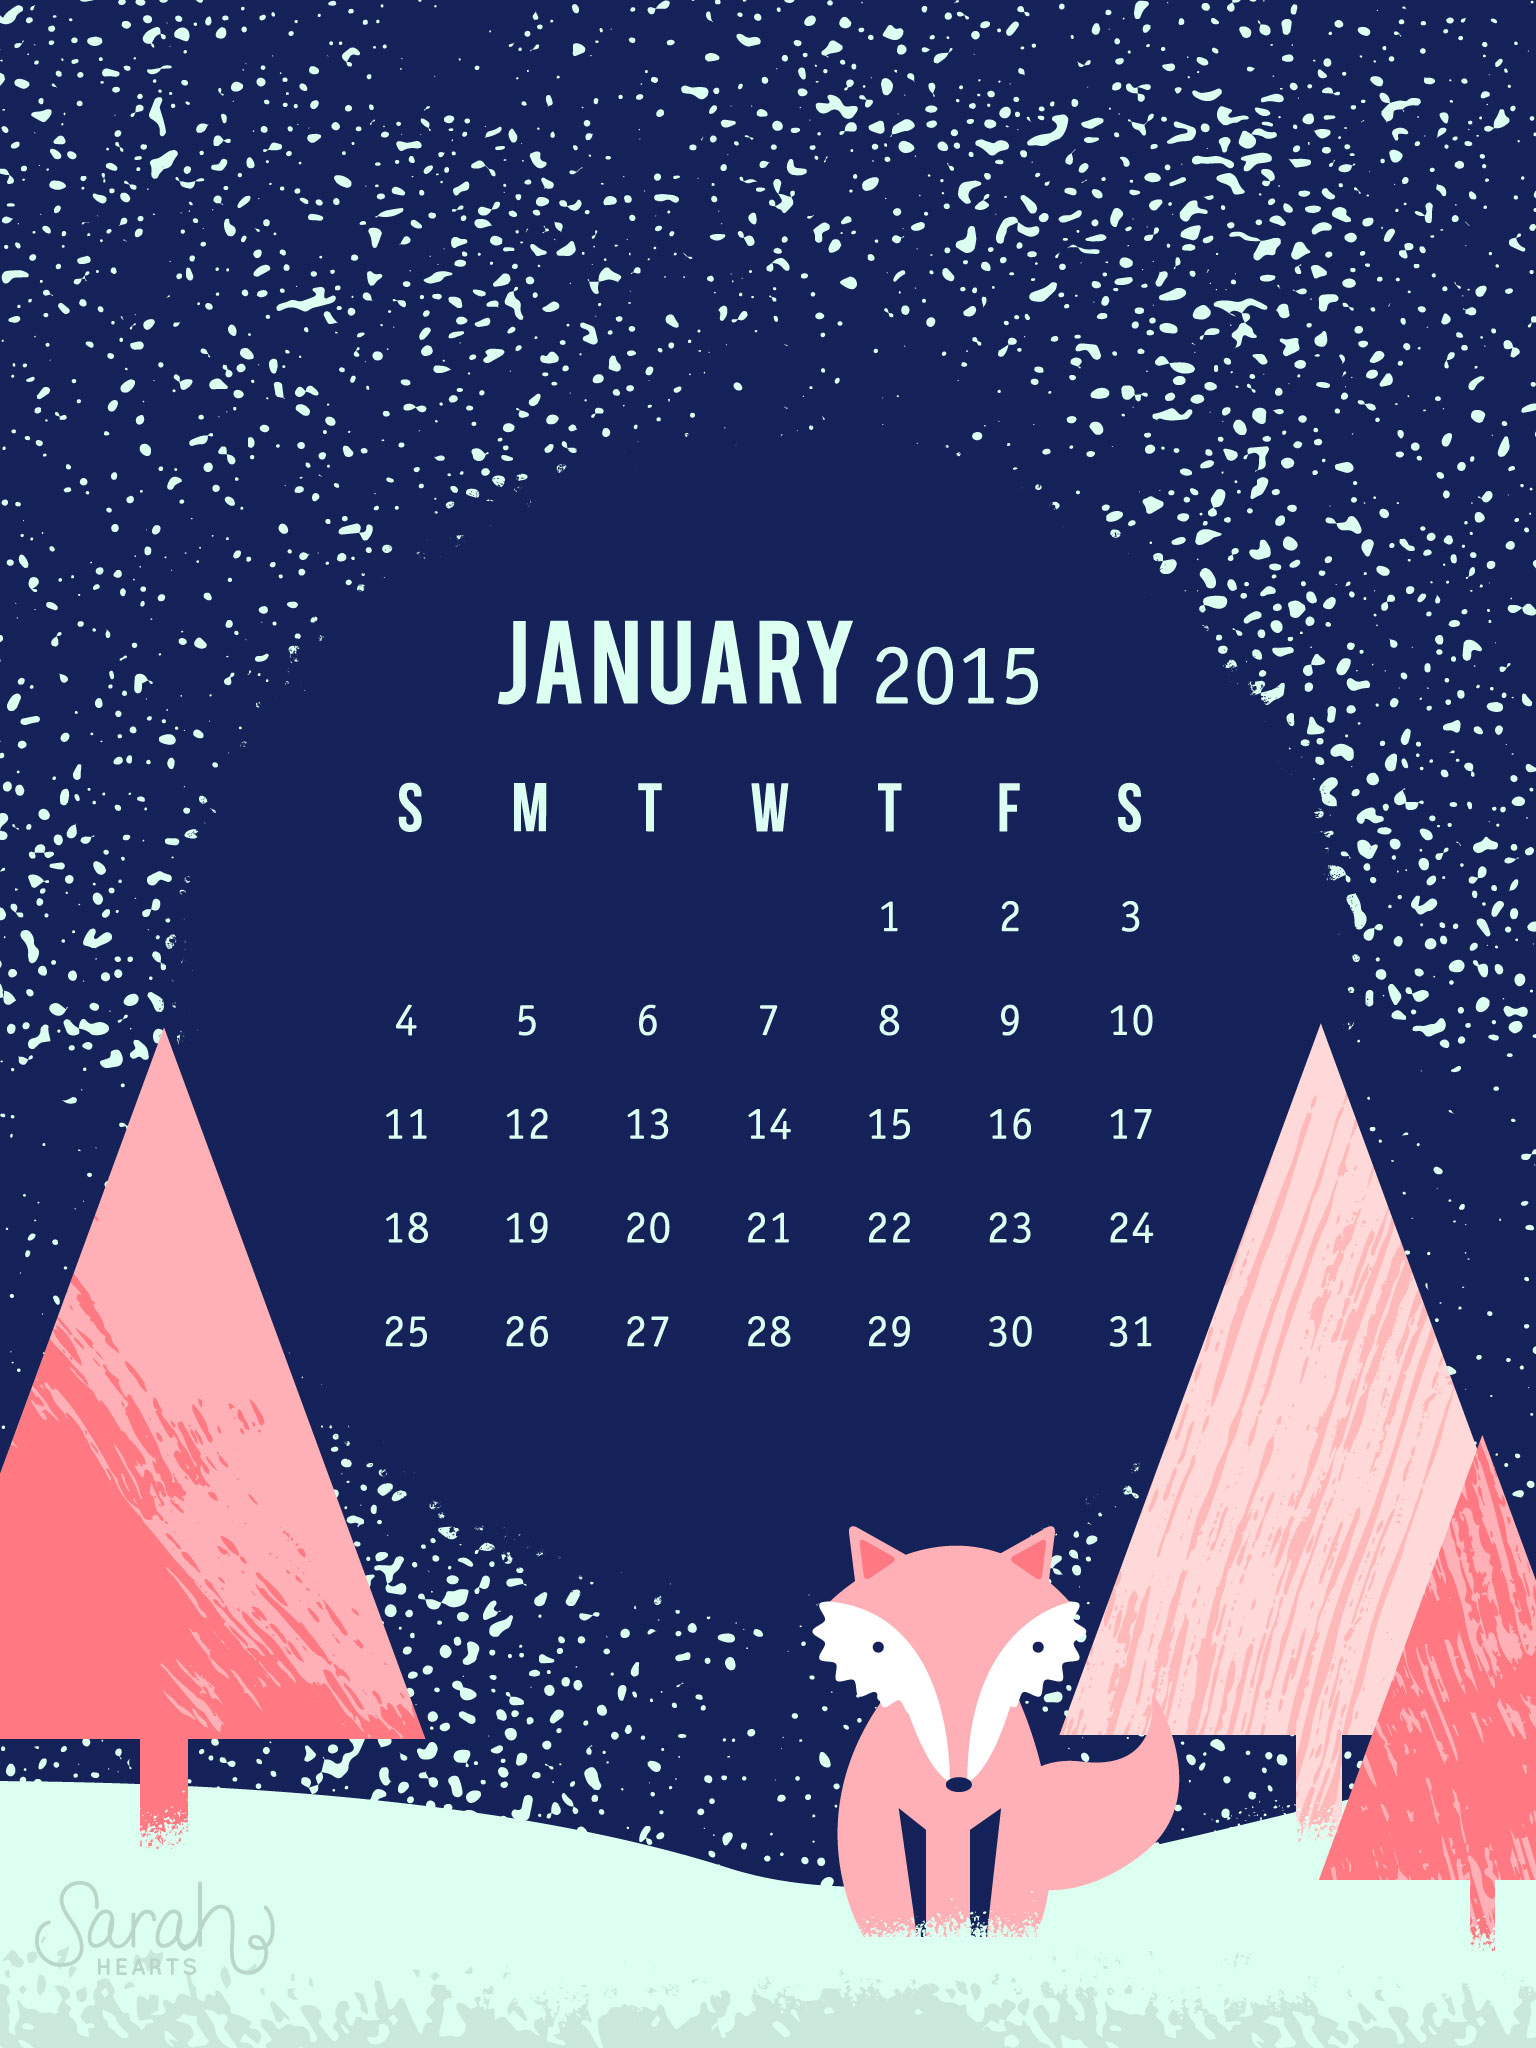 Cute January Calendar Wallpaper : Sarah hearts january calendar wallpaper